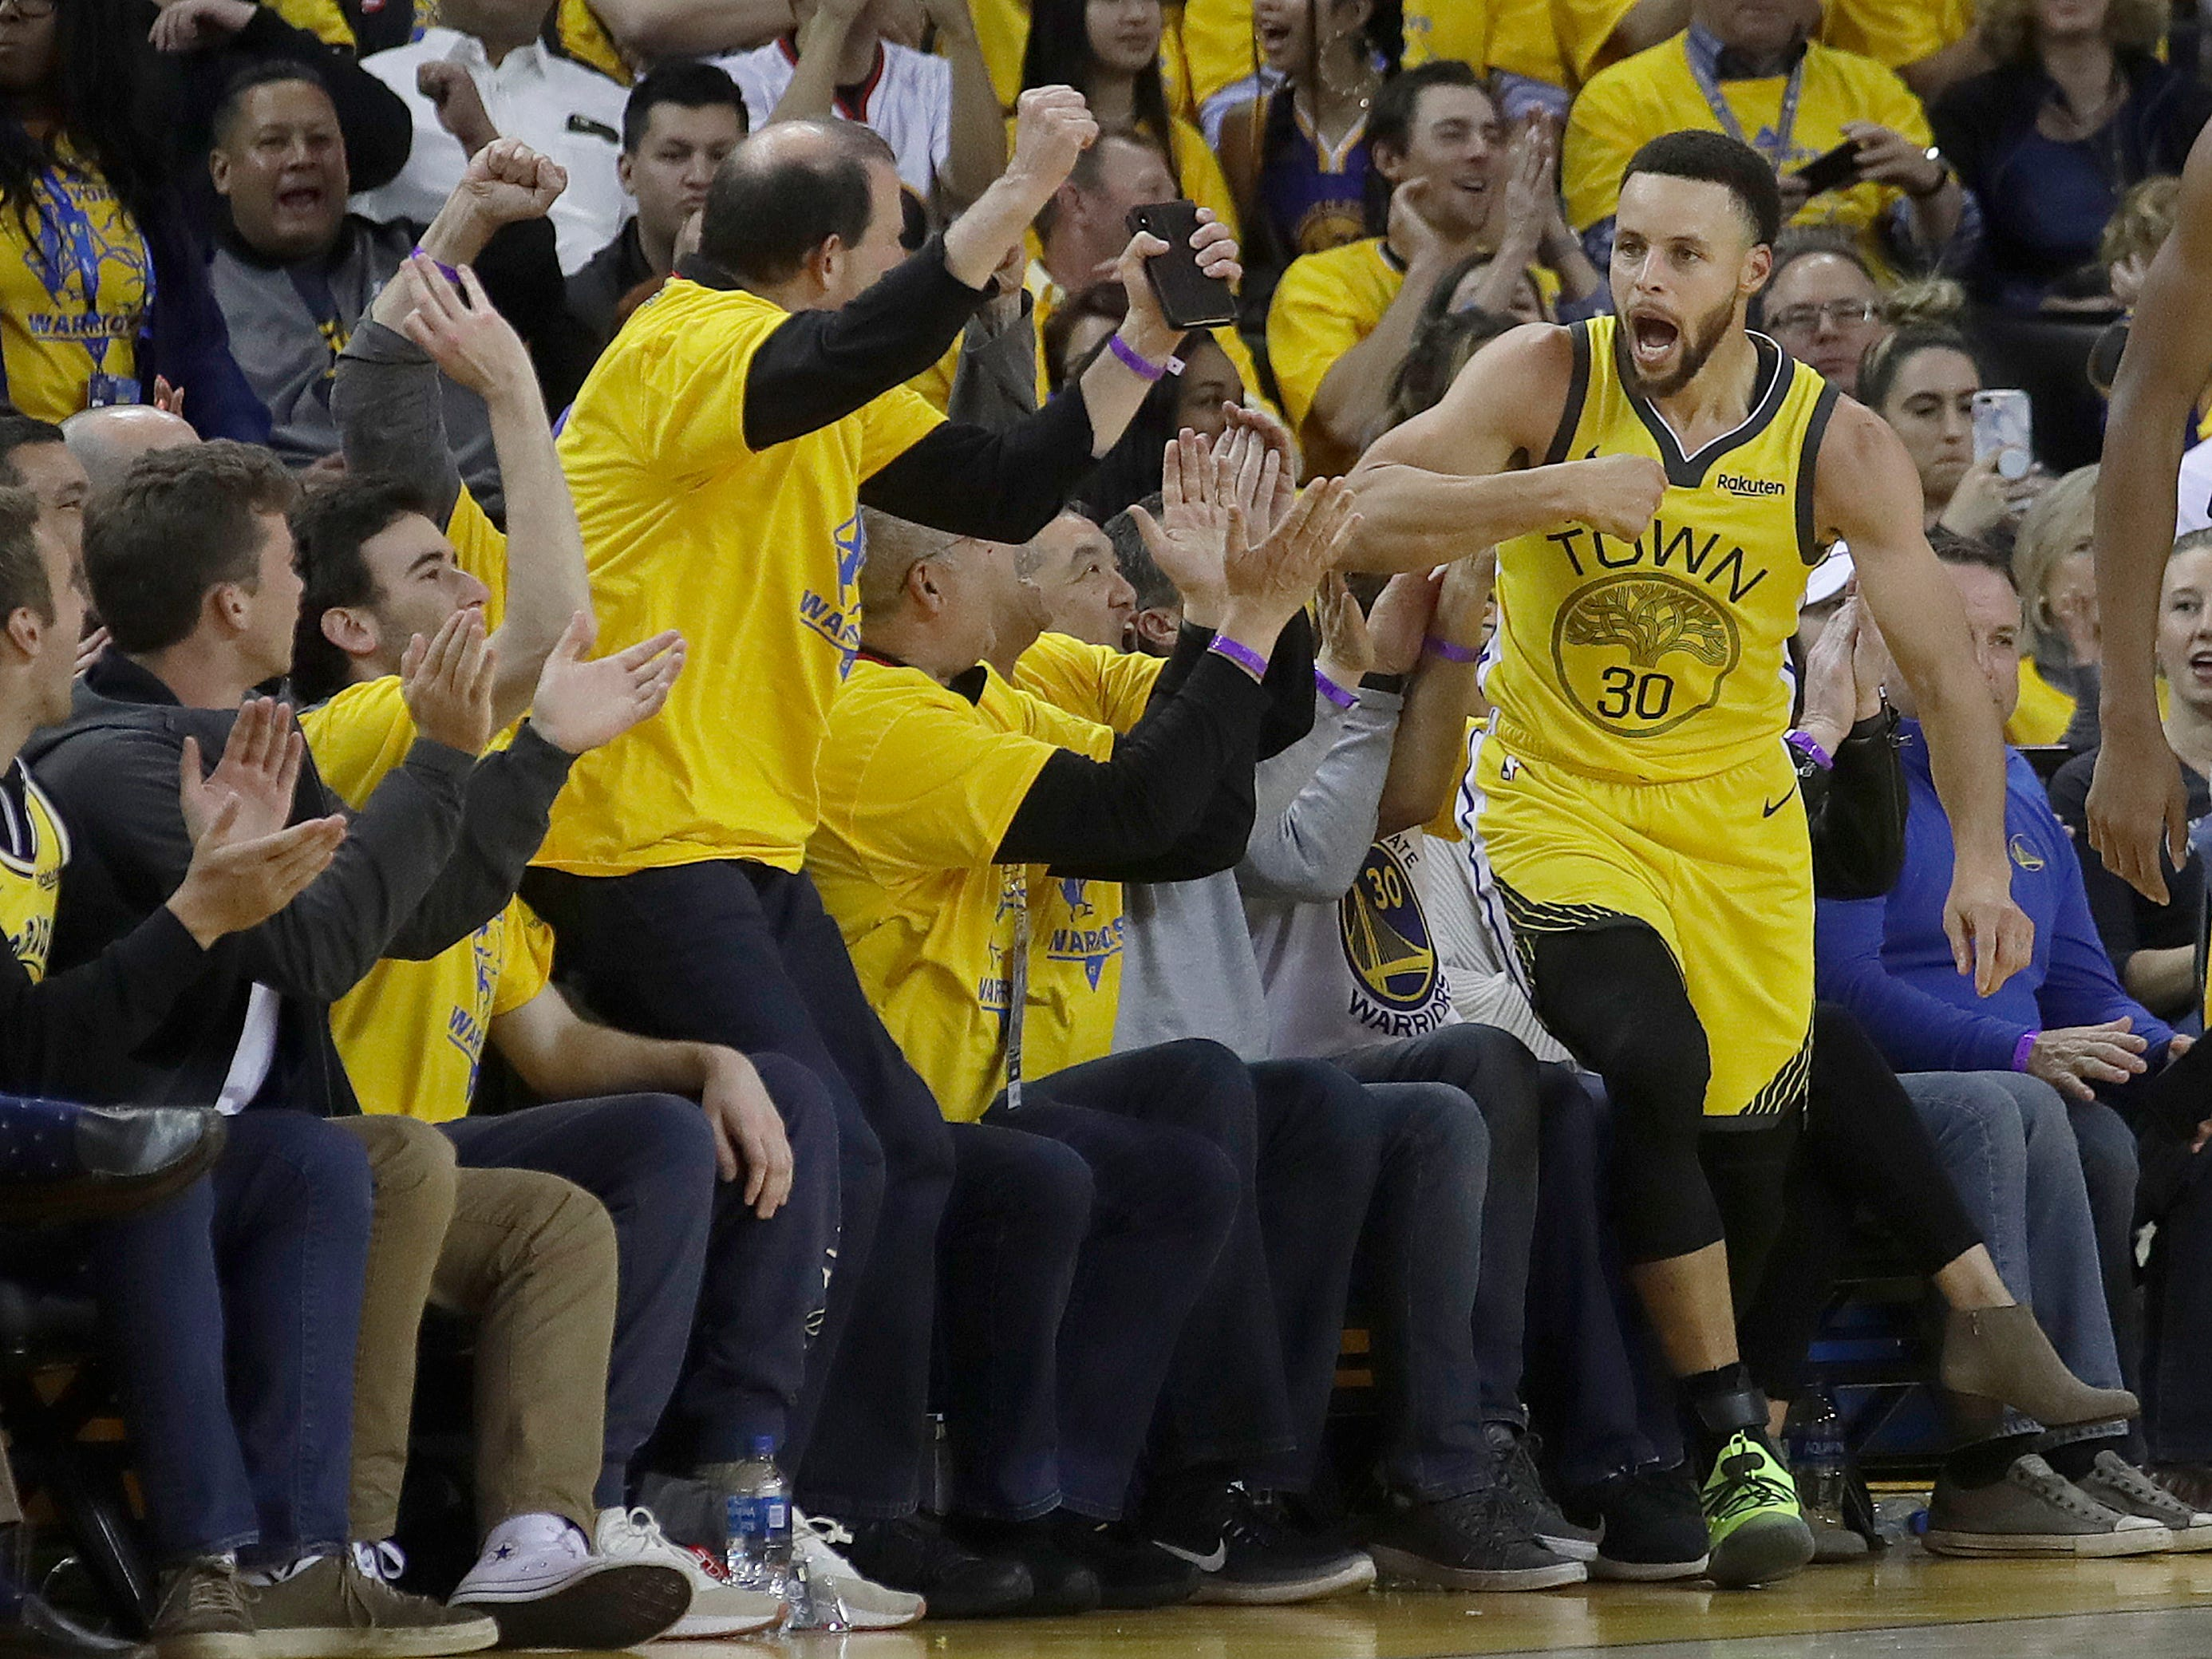 April 15: Warriors guard Stephen Curry celebrates after scoring against the Clippers during the first half of Game 2.